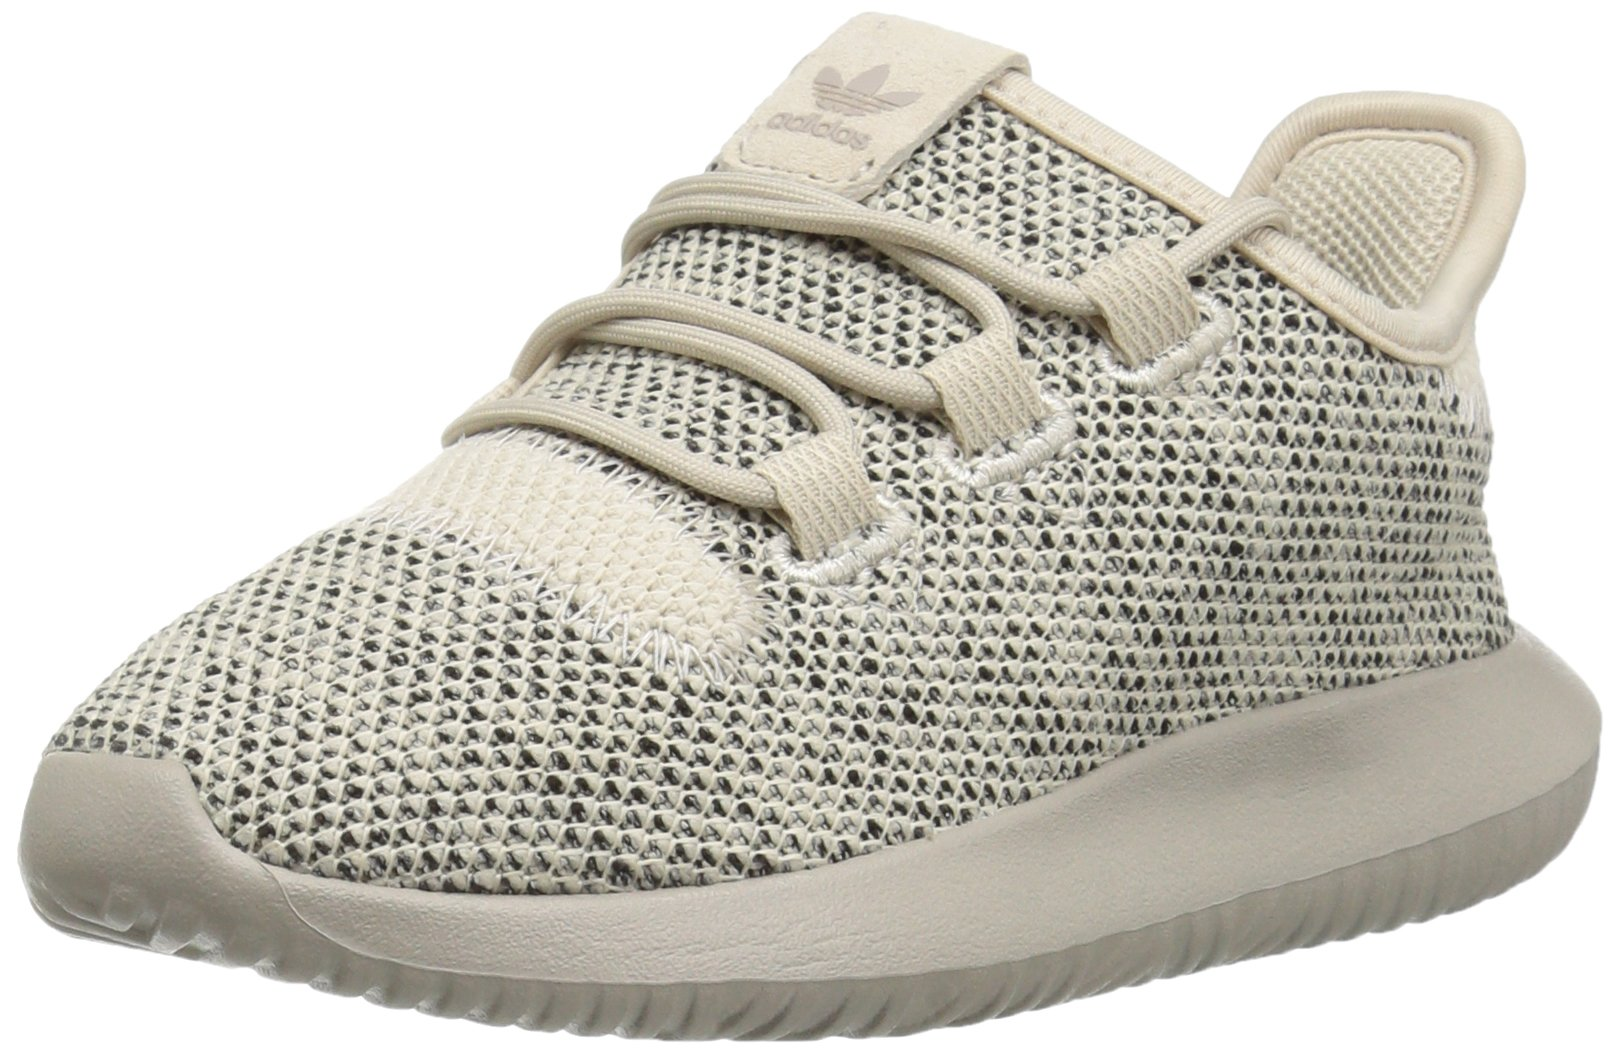 adidas Originals Boys' Tubular Shadow C Sneaker, Clear/Brown/Collegiate Silver/Black, 12 M US Little Kid by adidas Originals